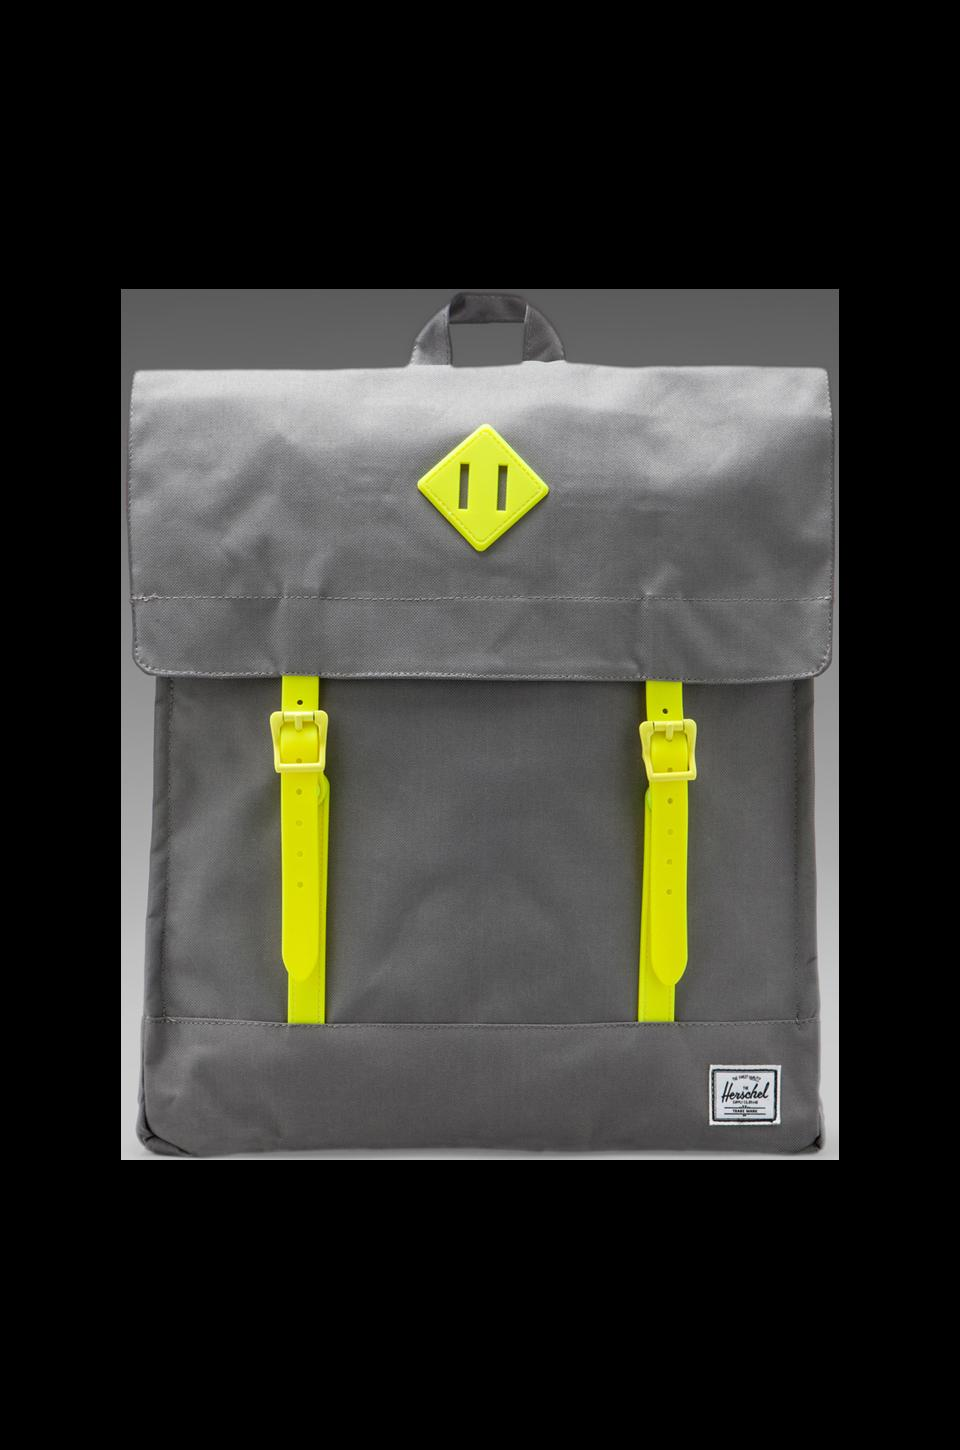 Herschel Supply Co. Weather Pack Survey in Grey/Yellow Rubber